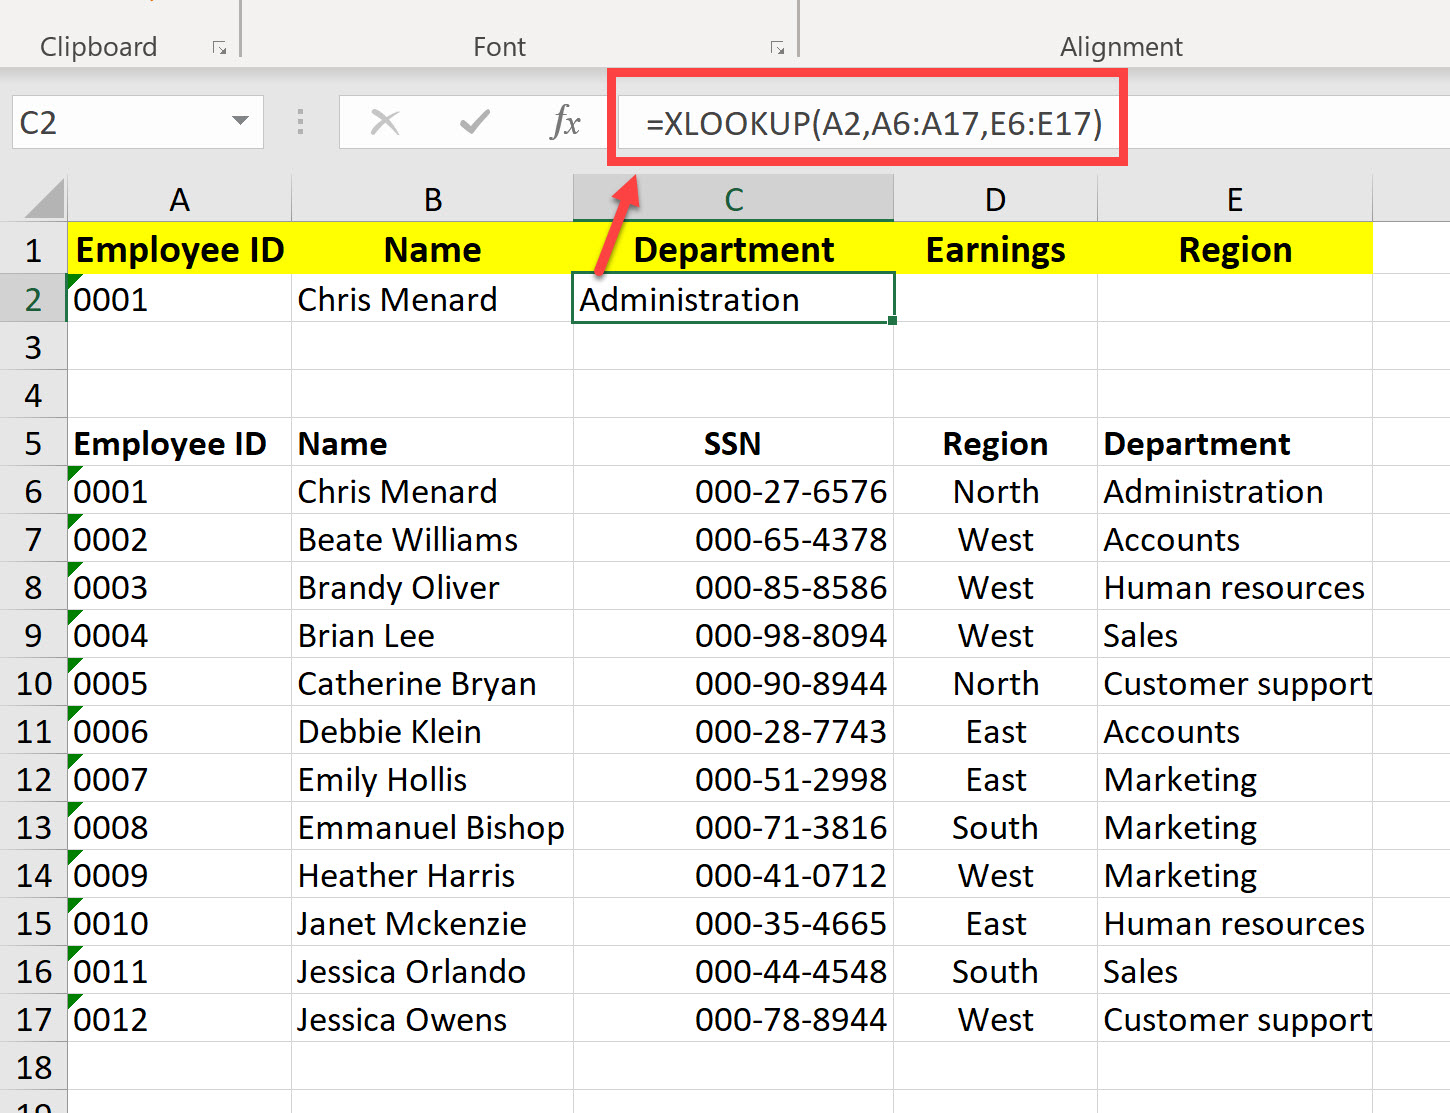 6 New Functions in Excel 2019